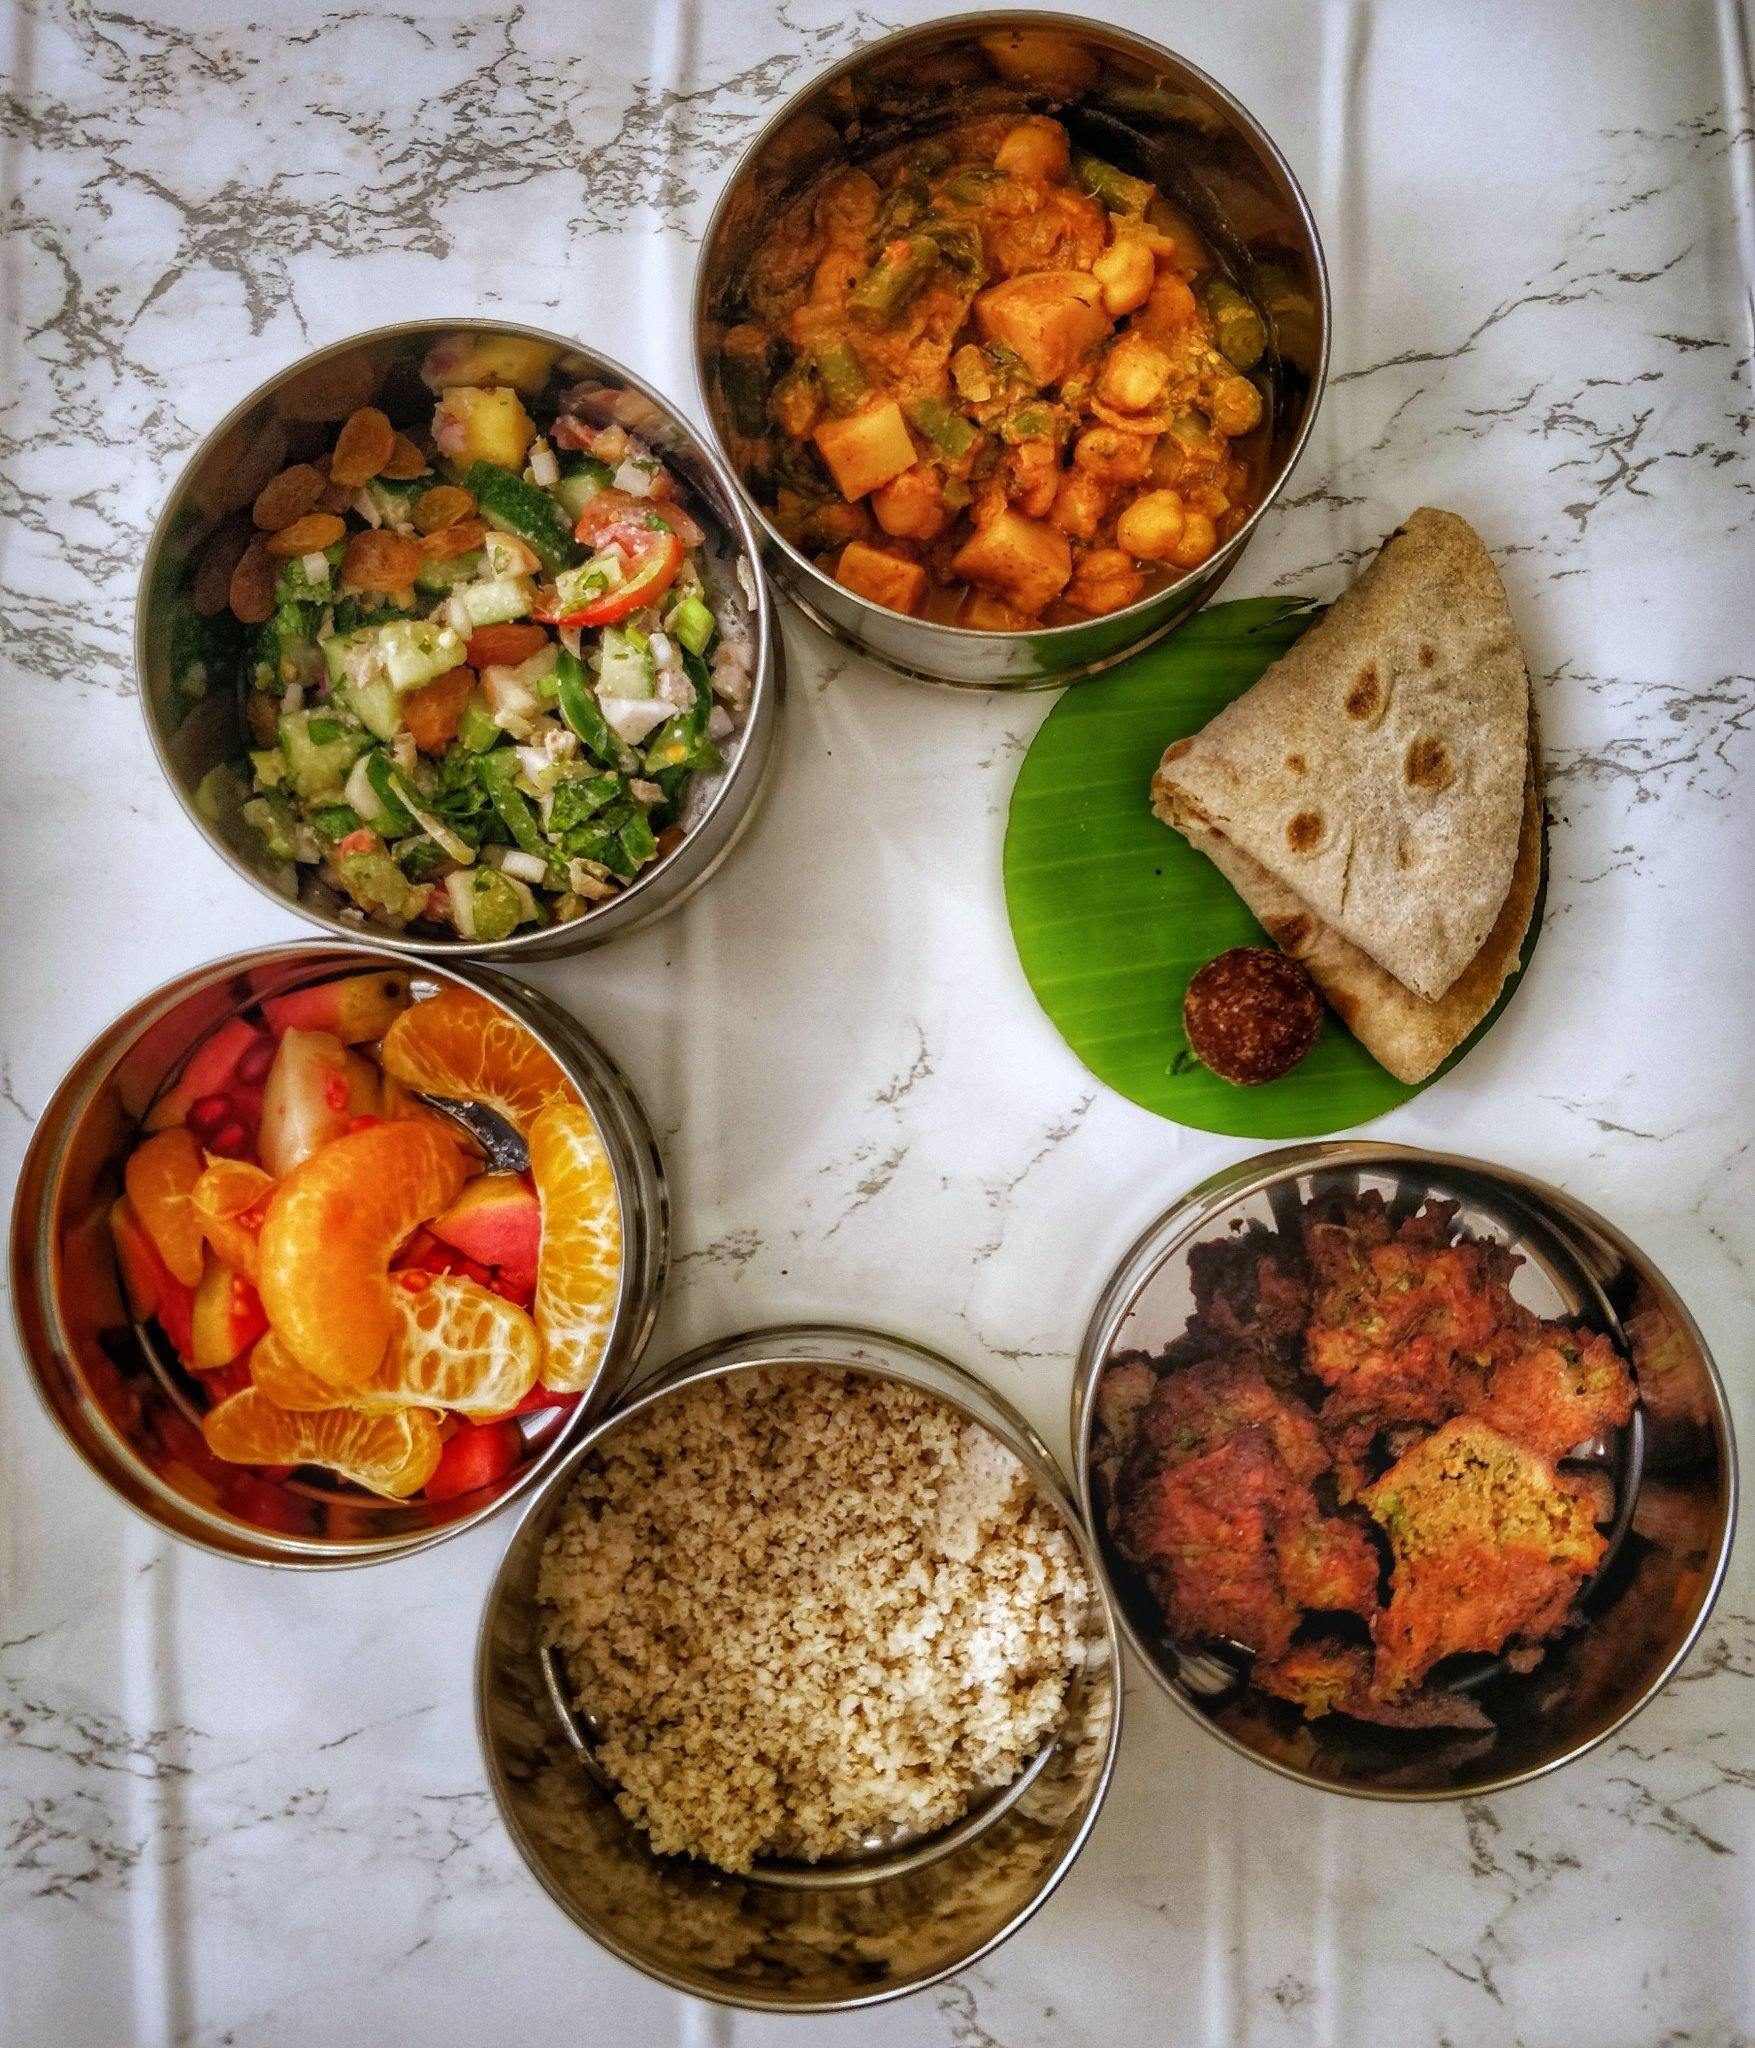 Plant-Based Wellness Meals - Starter Pack | Healthy Food | Vegan | Lunch & Dinner | Nutrition Balanced Diet | Restaurants Style | Weight Loss Diet | Whole Food Plant Based Meal - SampoornaAhara.com